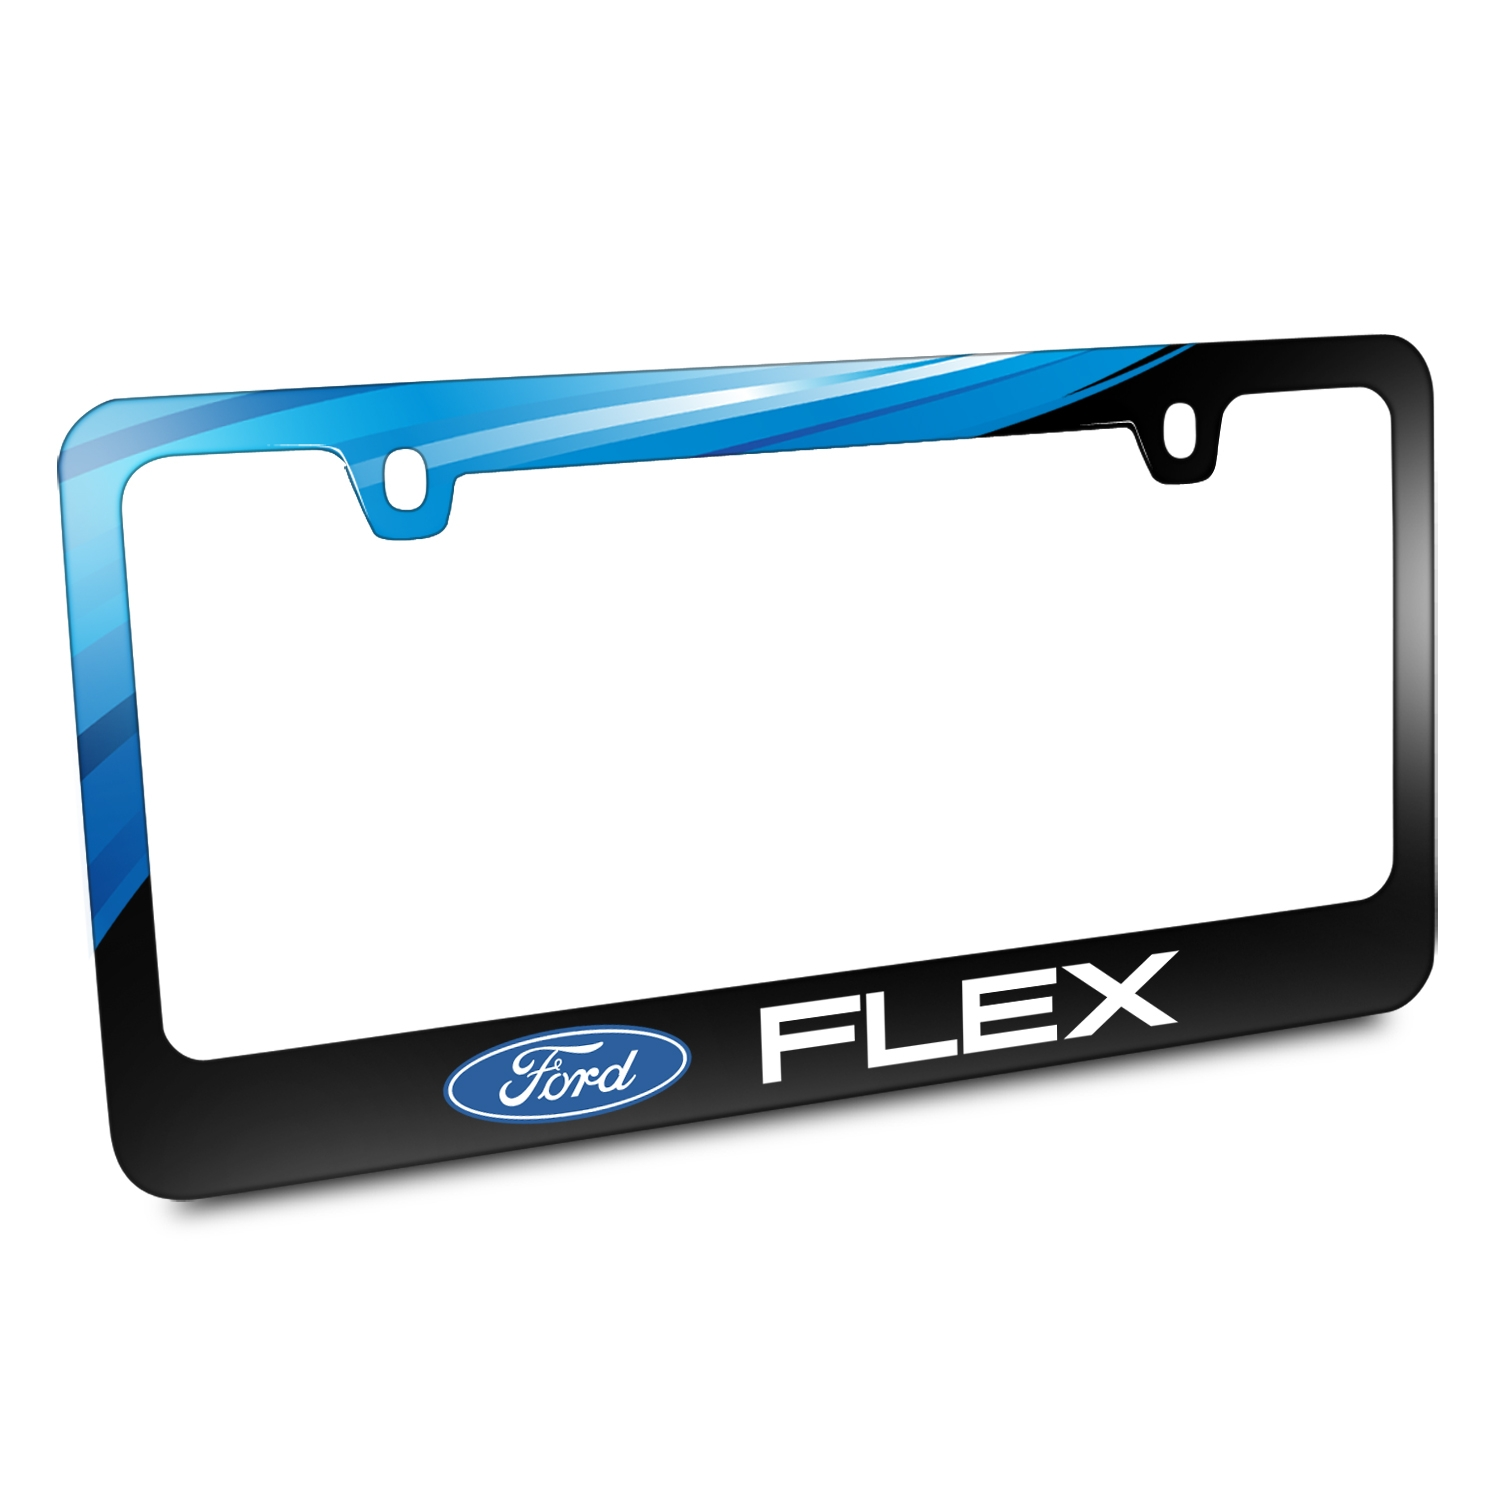 Ford Logo Flex Black Metal Graphic License Plate Frame